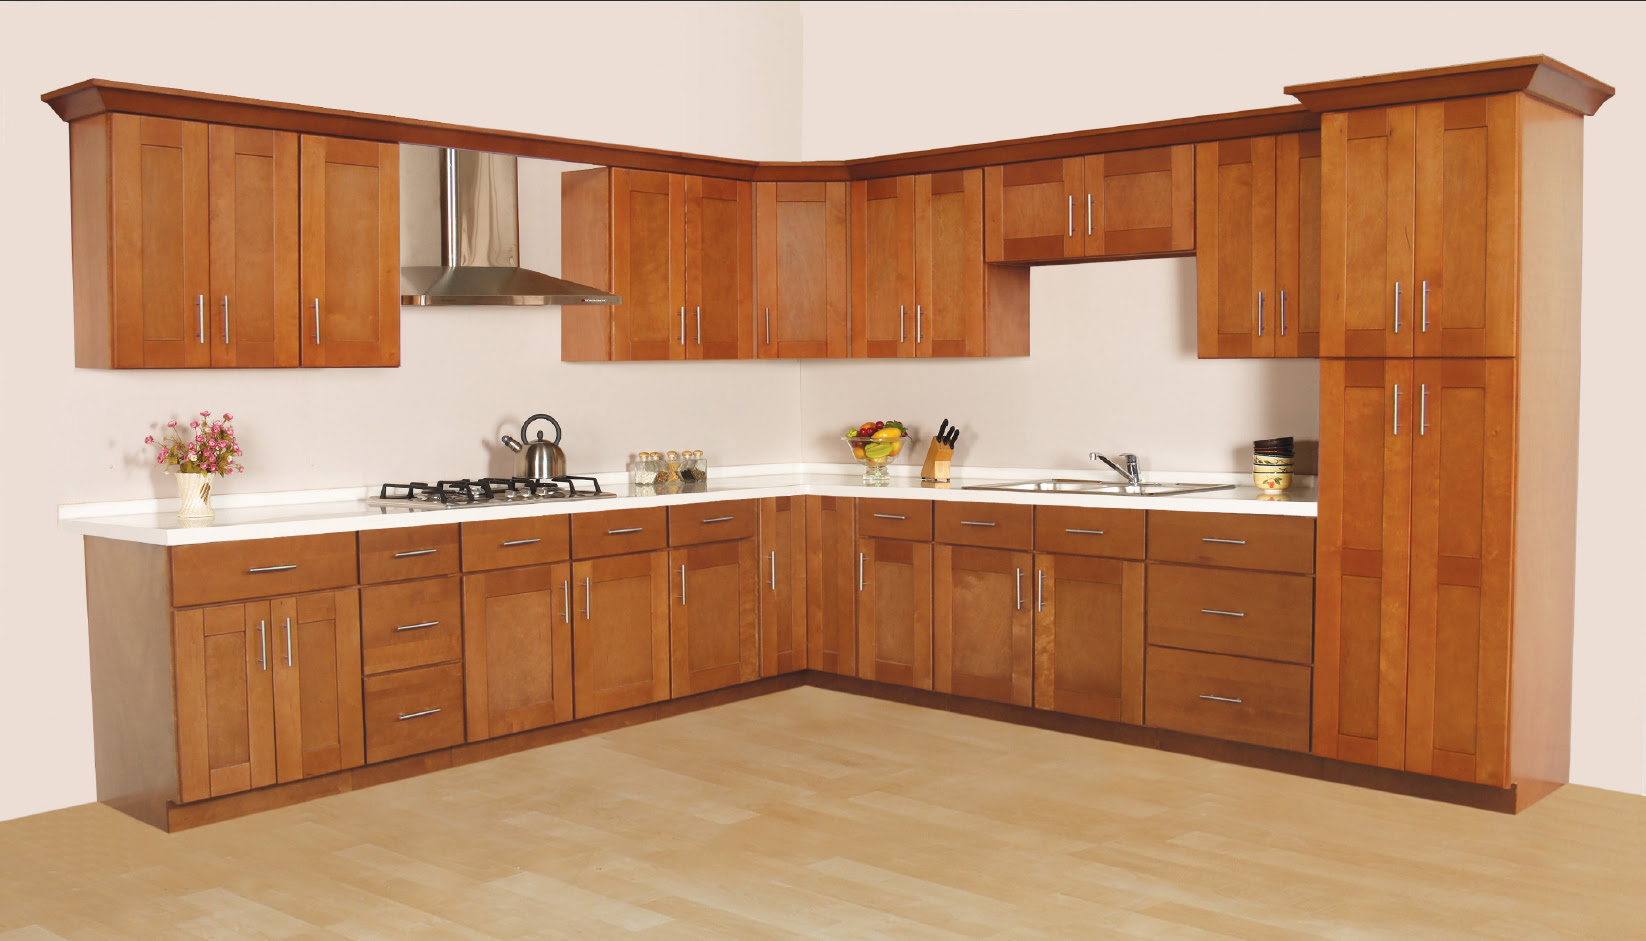 Menards Kitchen Cabinet: Price and Details  Home and Cabinet Reviews